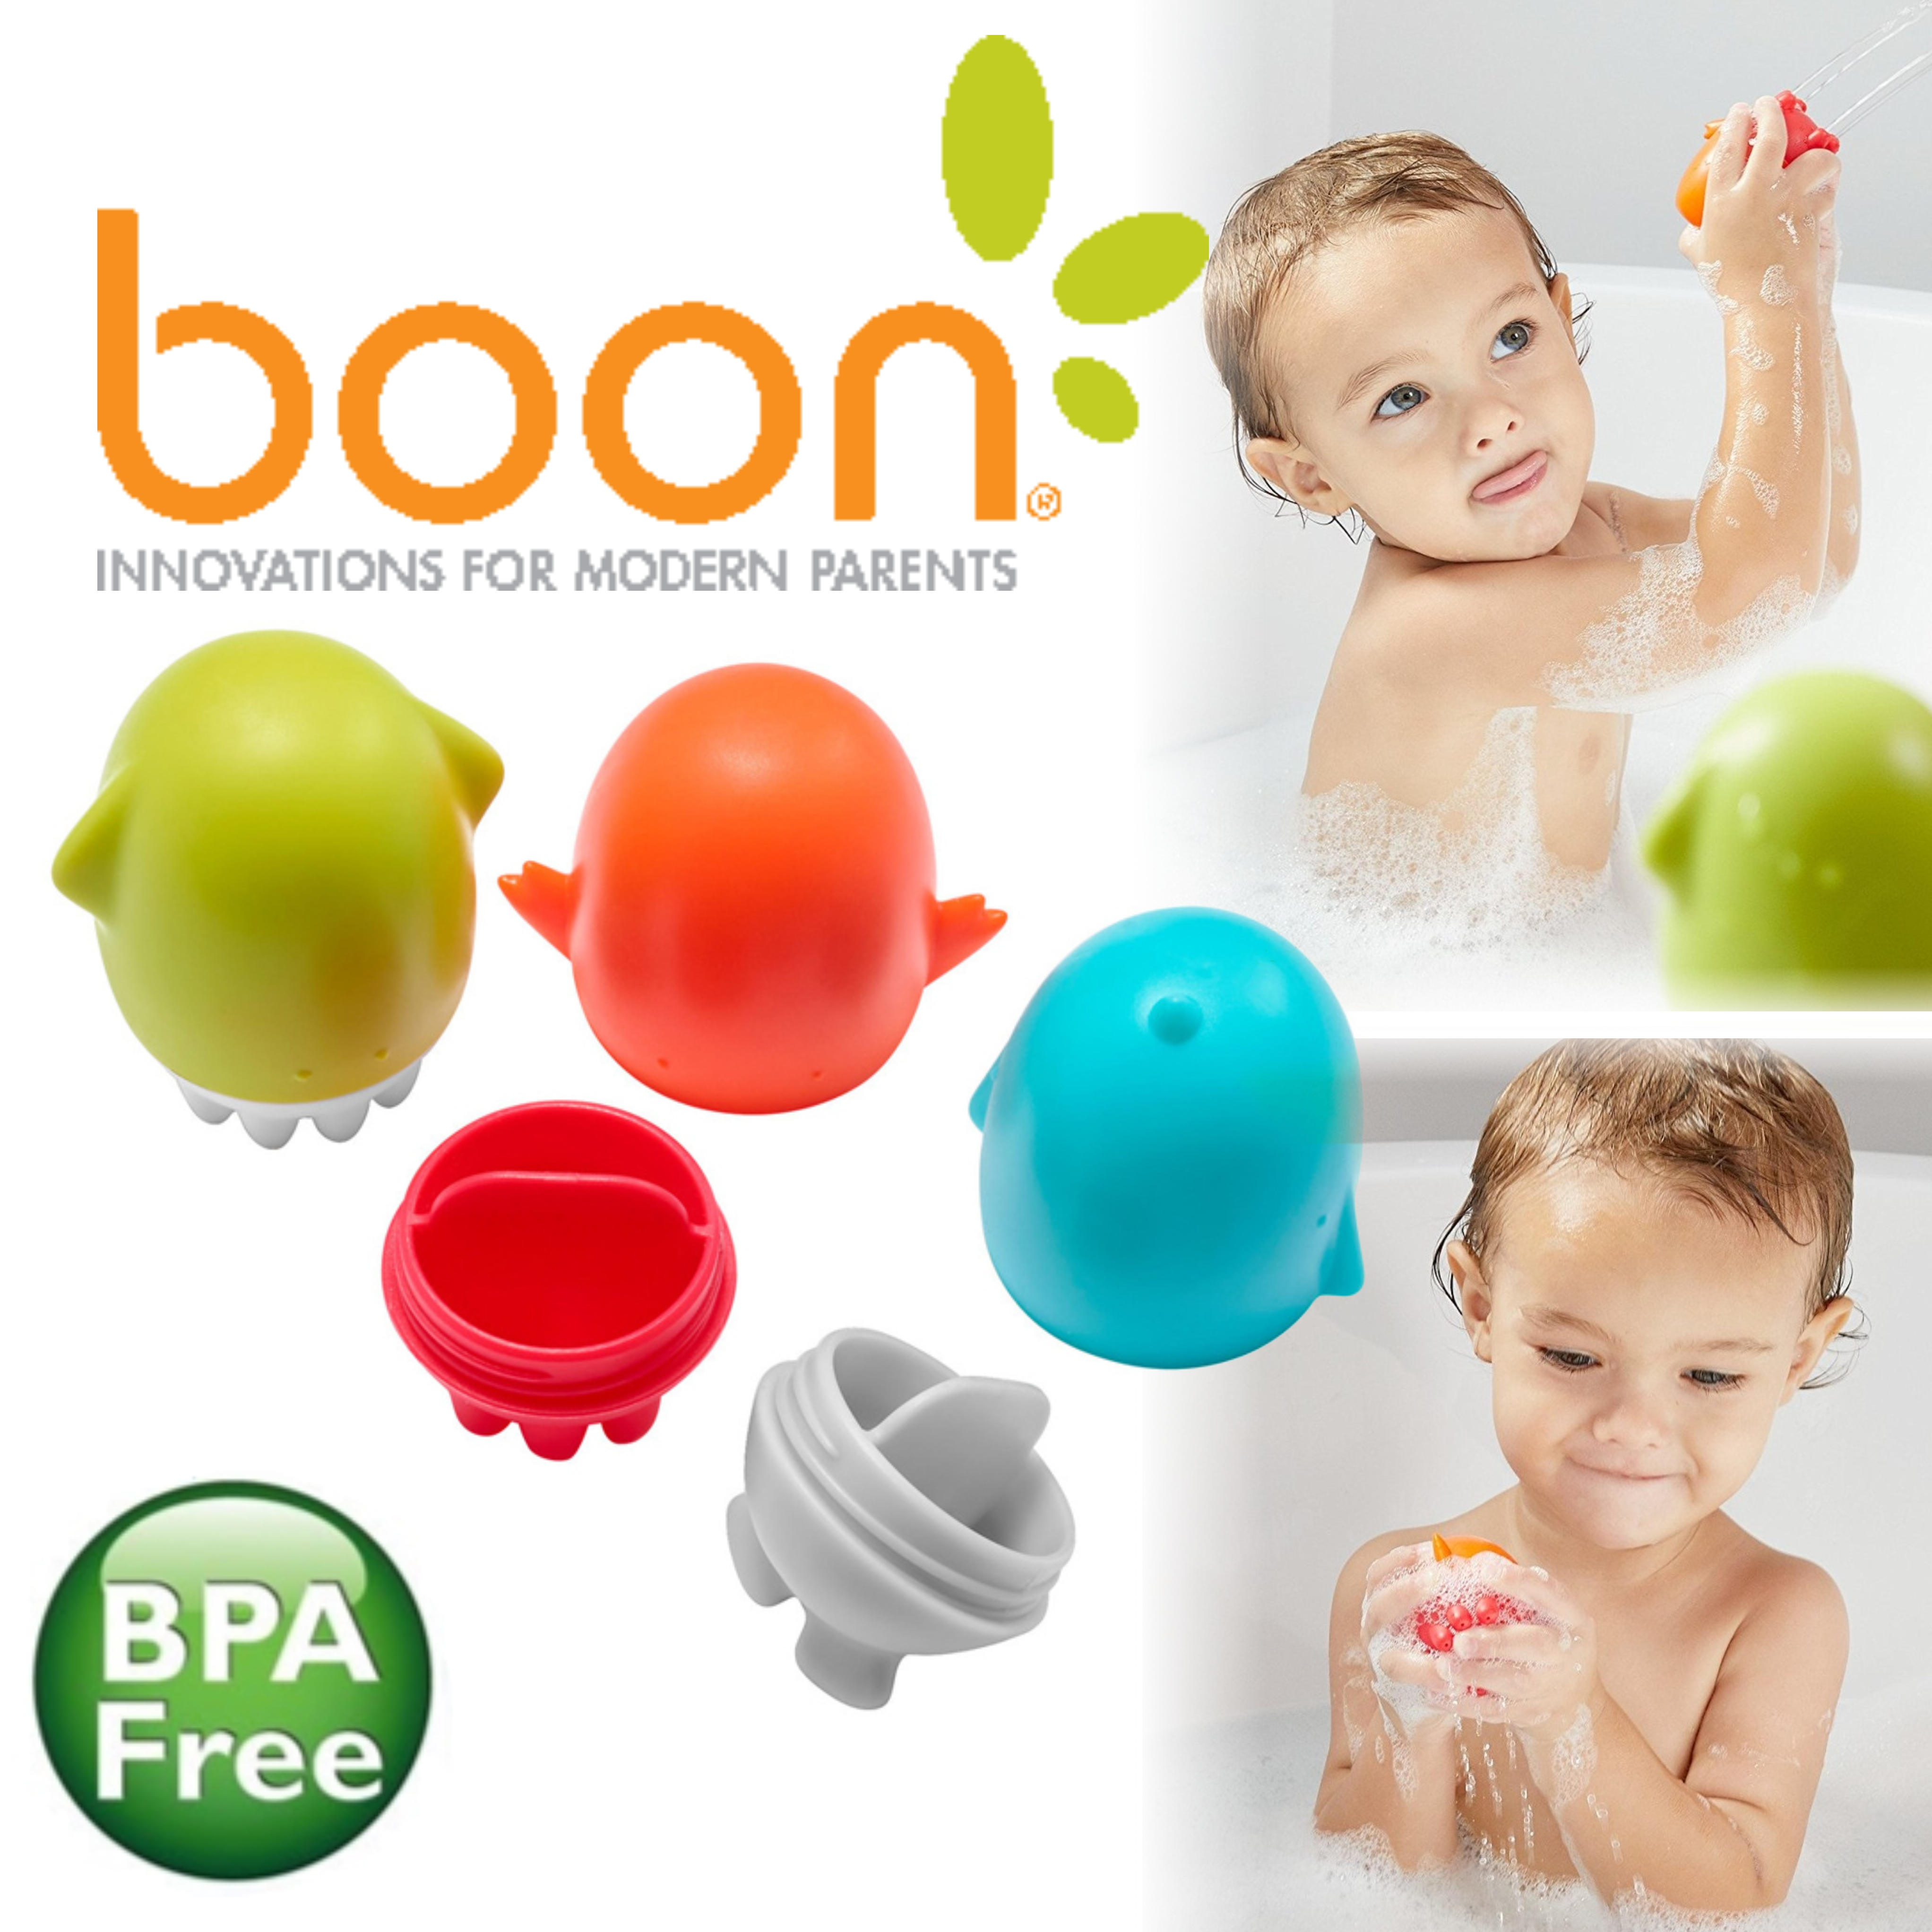 Boon SPURT Squirties Bath Toy|Kid's Funny Bathing Toy|Different Shapes|BPA Free|